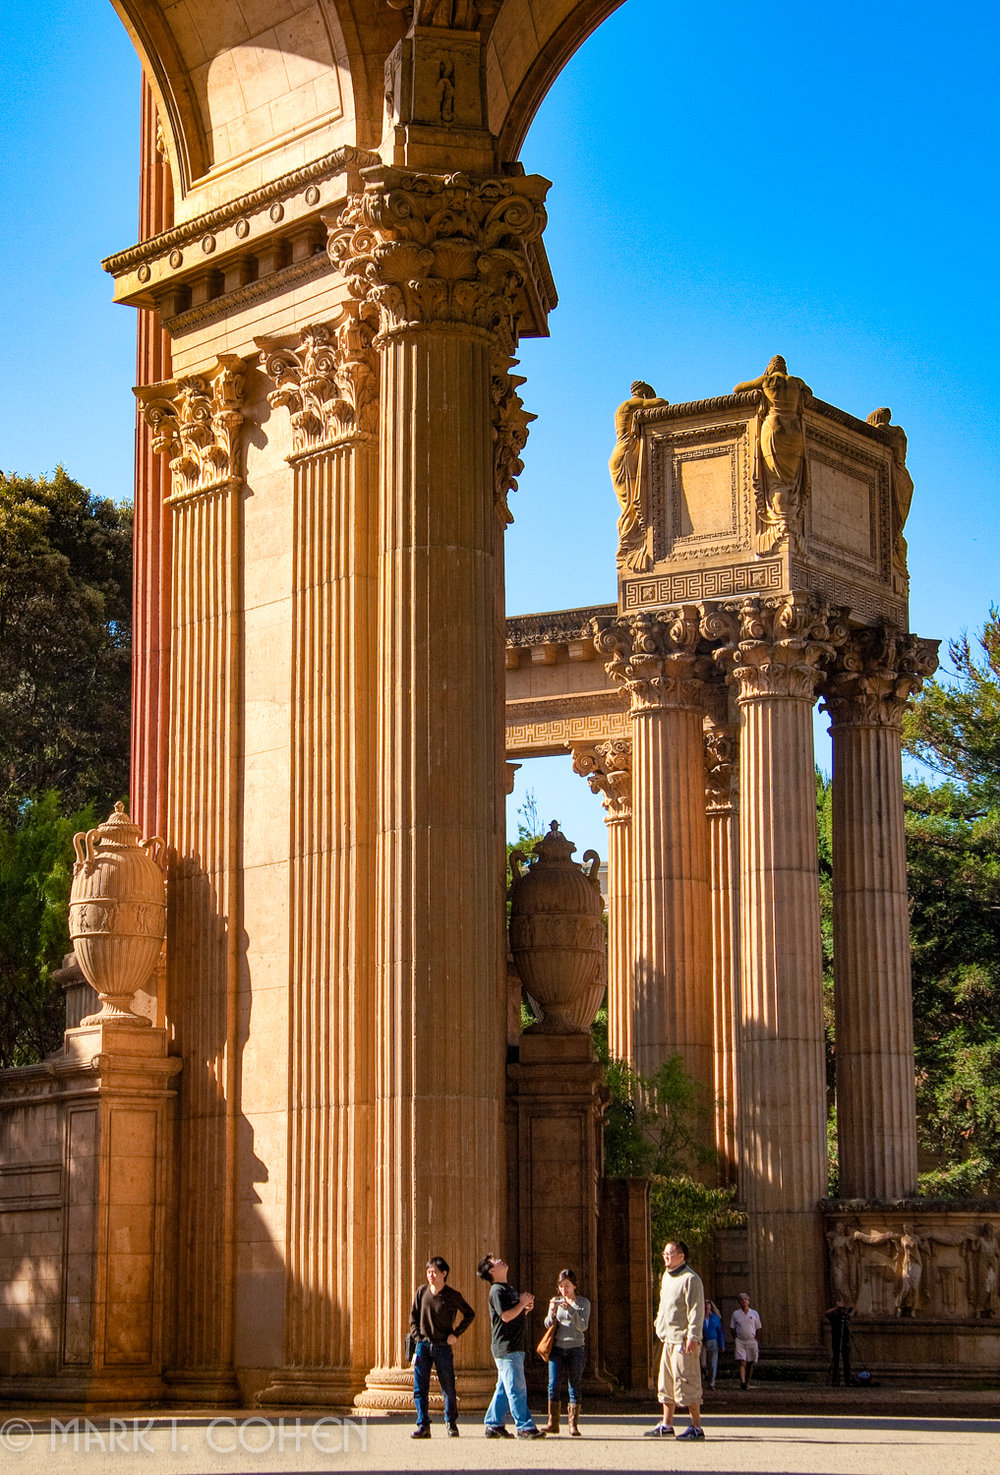 Palace of Fine Arts, San Francisco 2010